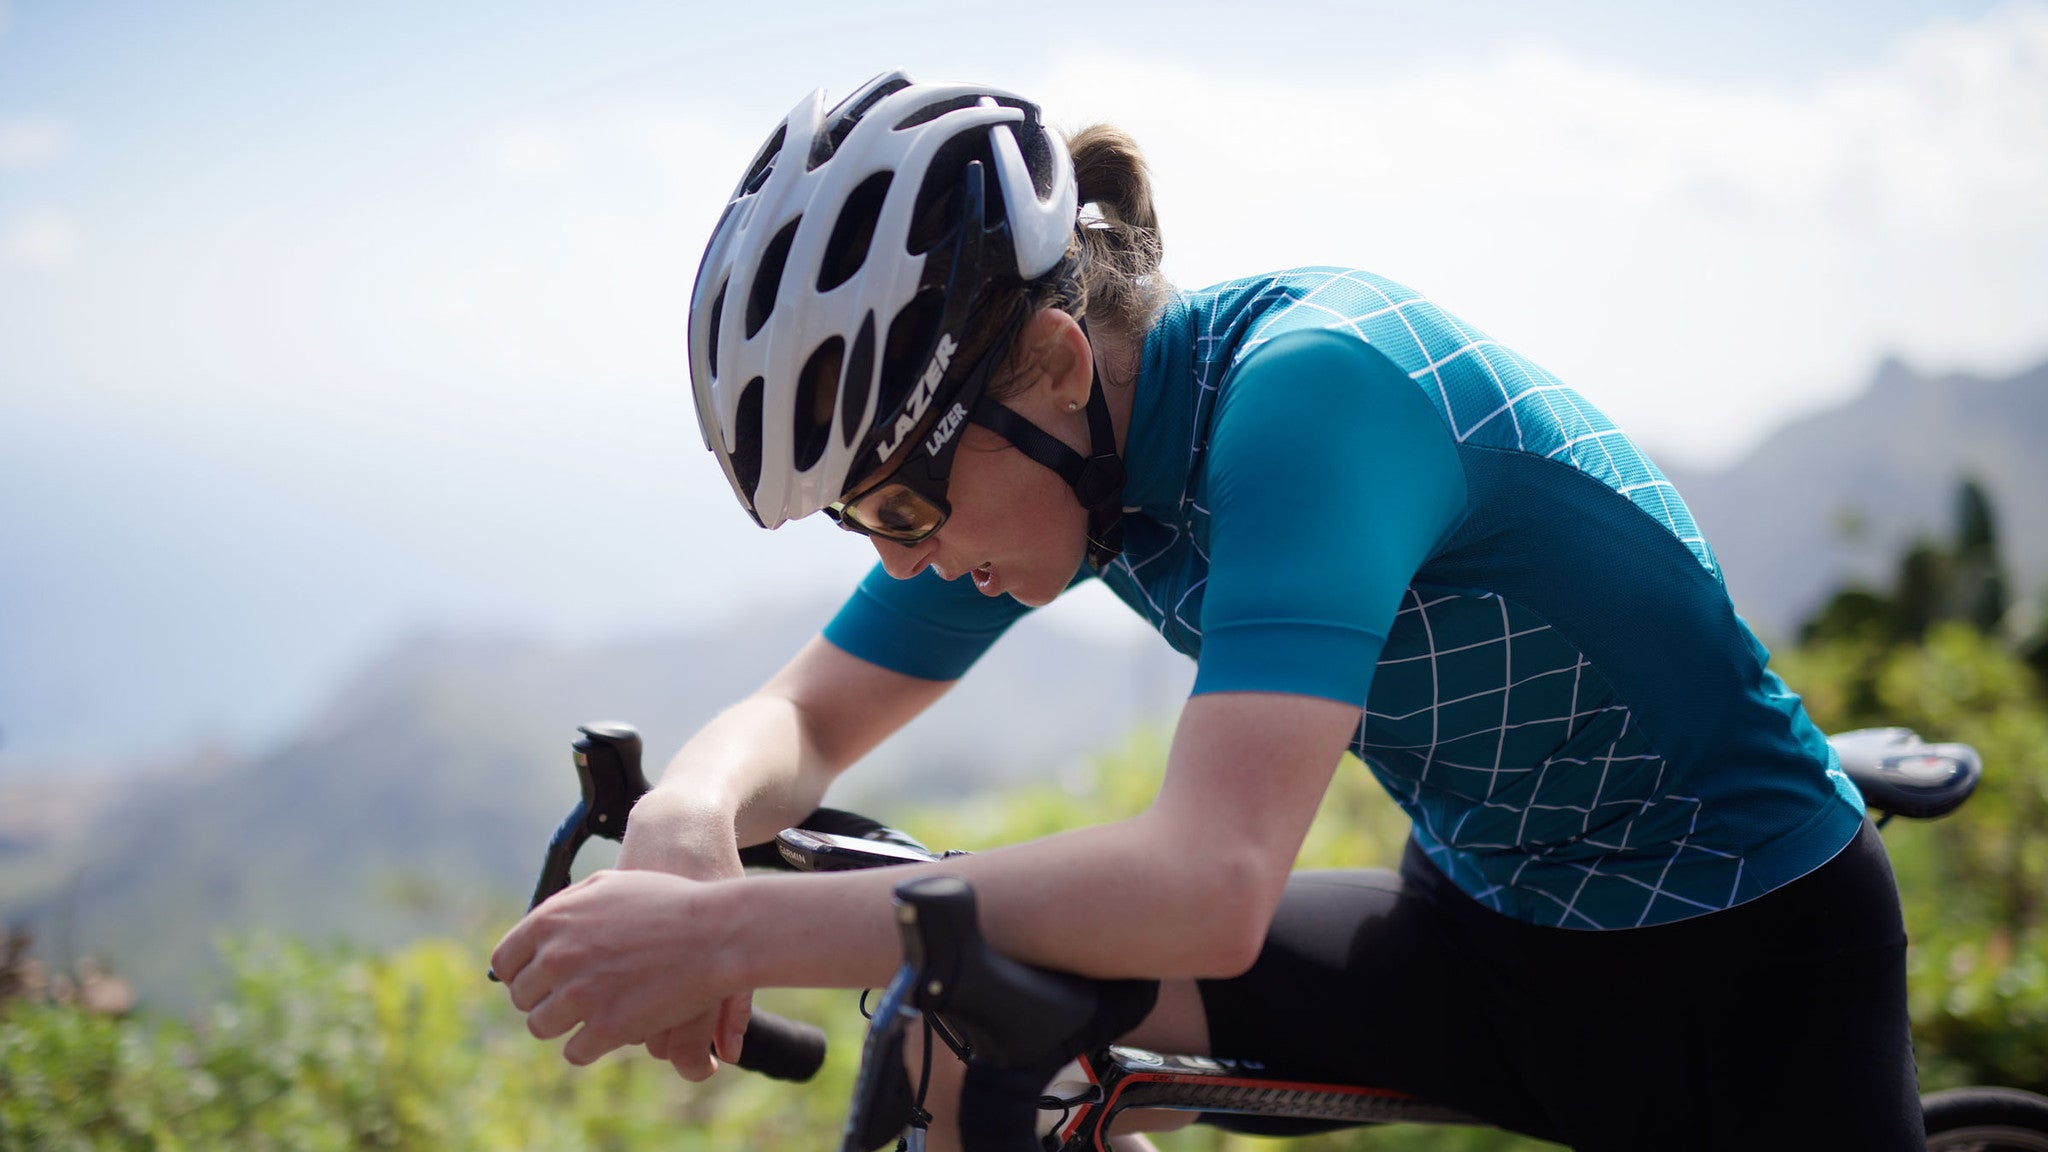 La Passione Women's Checked Ottanio Jersey | The CyclingTips Emporium - 6